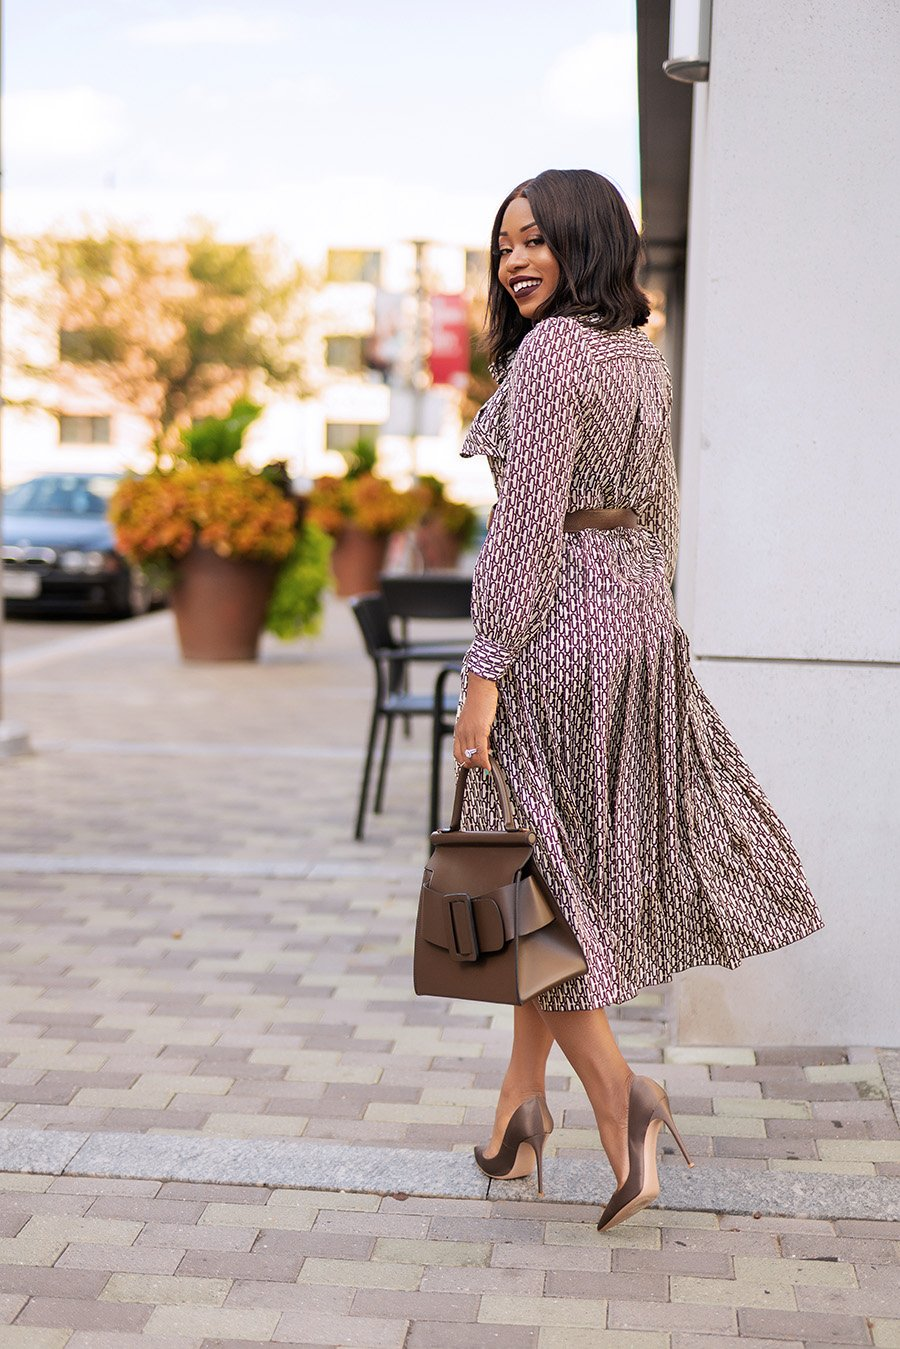 wear-this-pleated-dress-to-work-this-spring